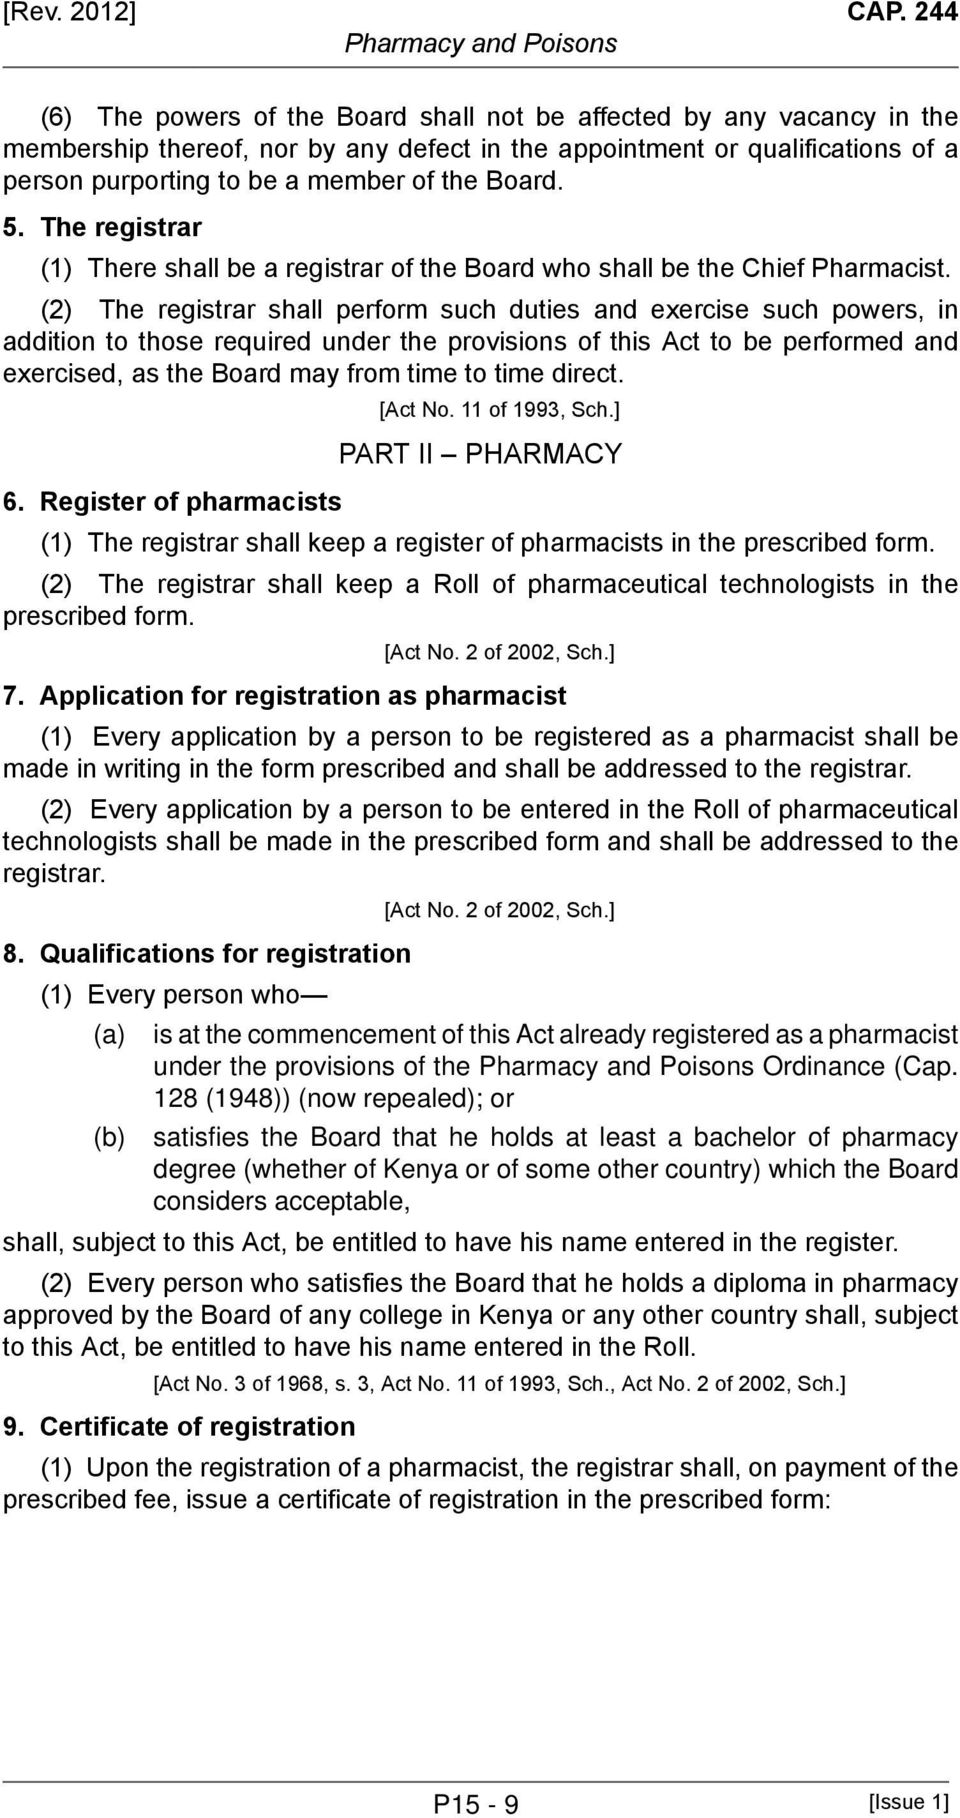 Board. 5. The registrar (1) There shall be a registrar of the Board who shall be the Chief Pharmacist.